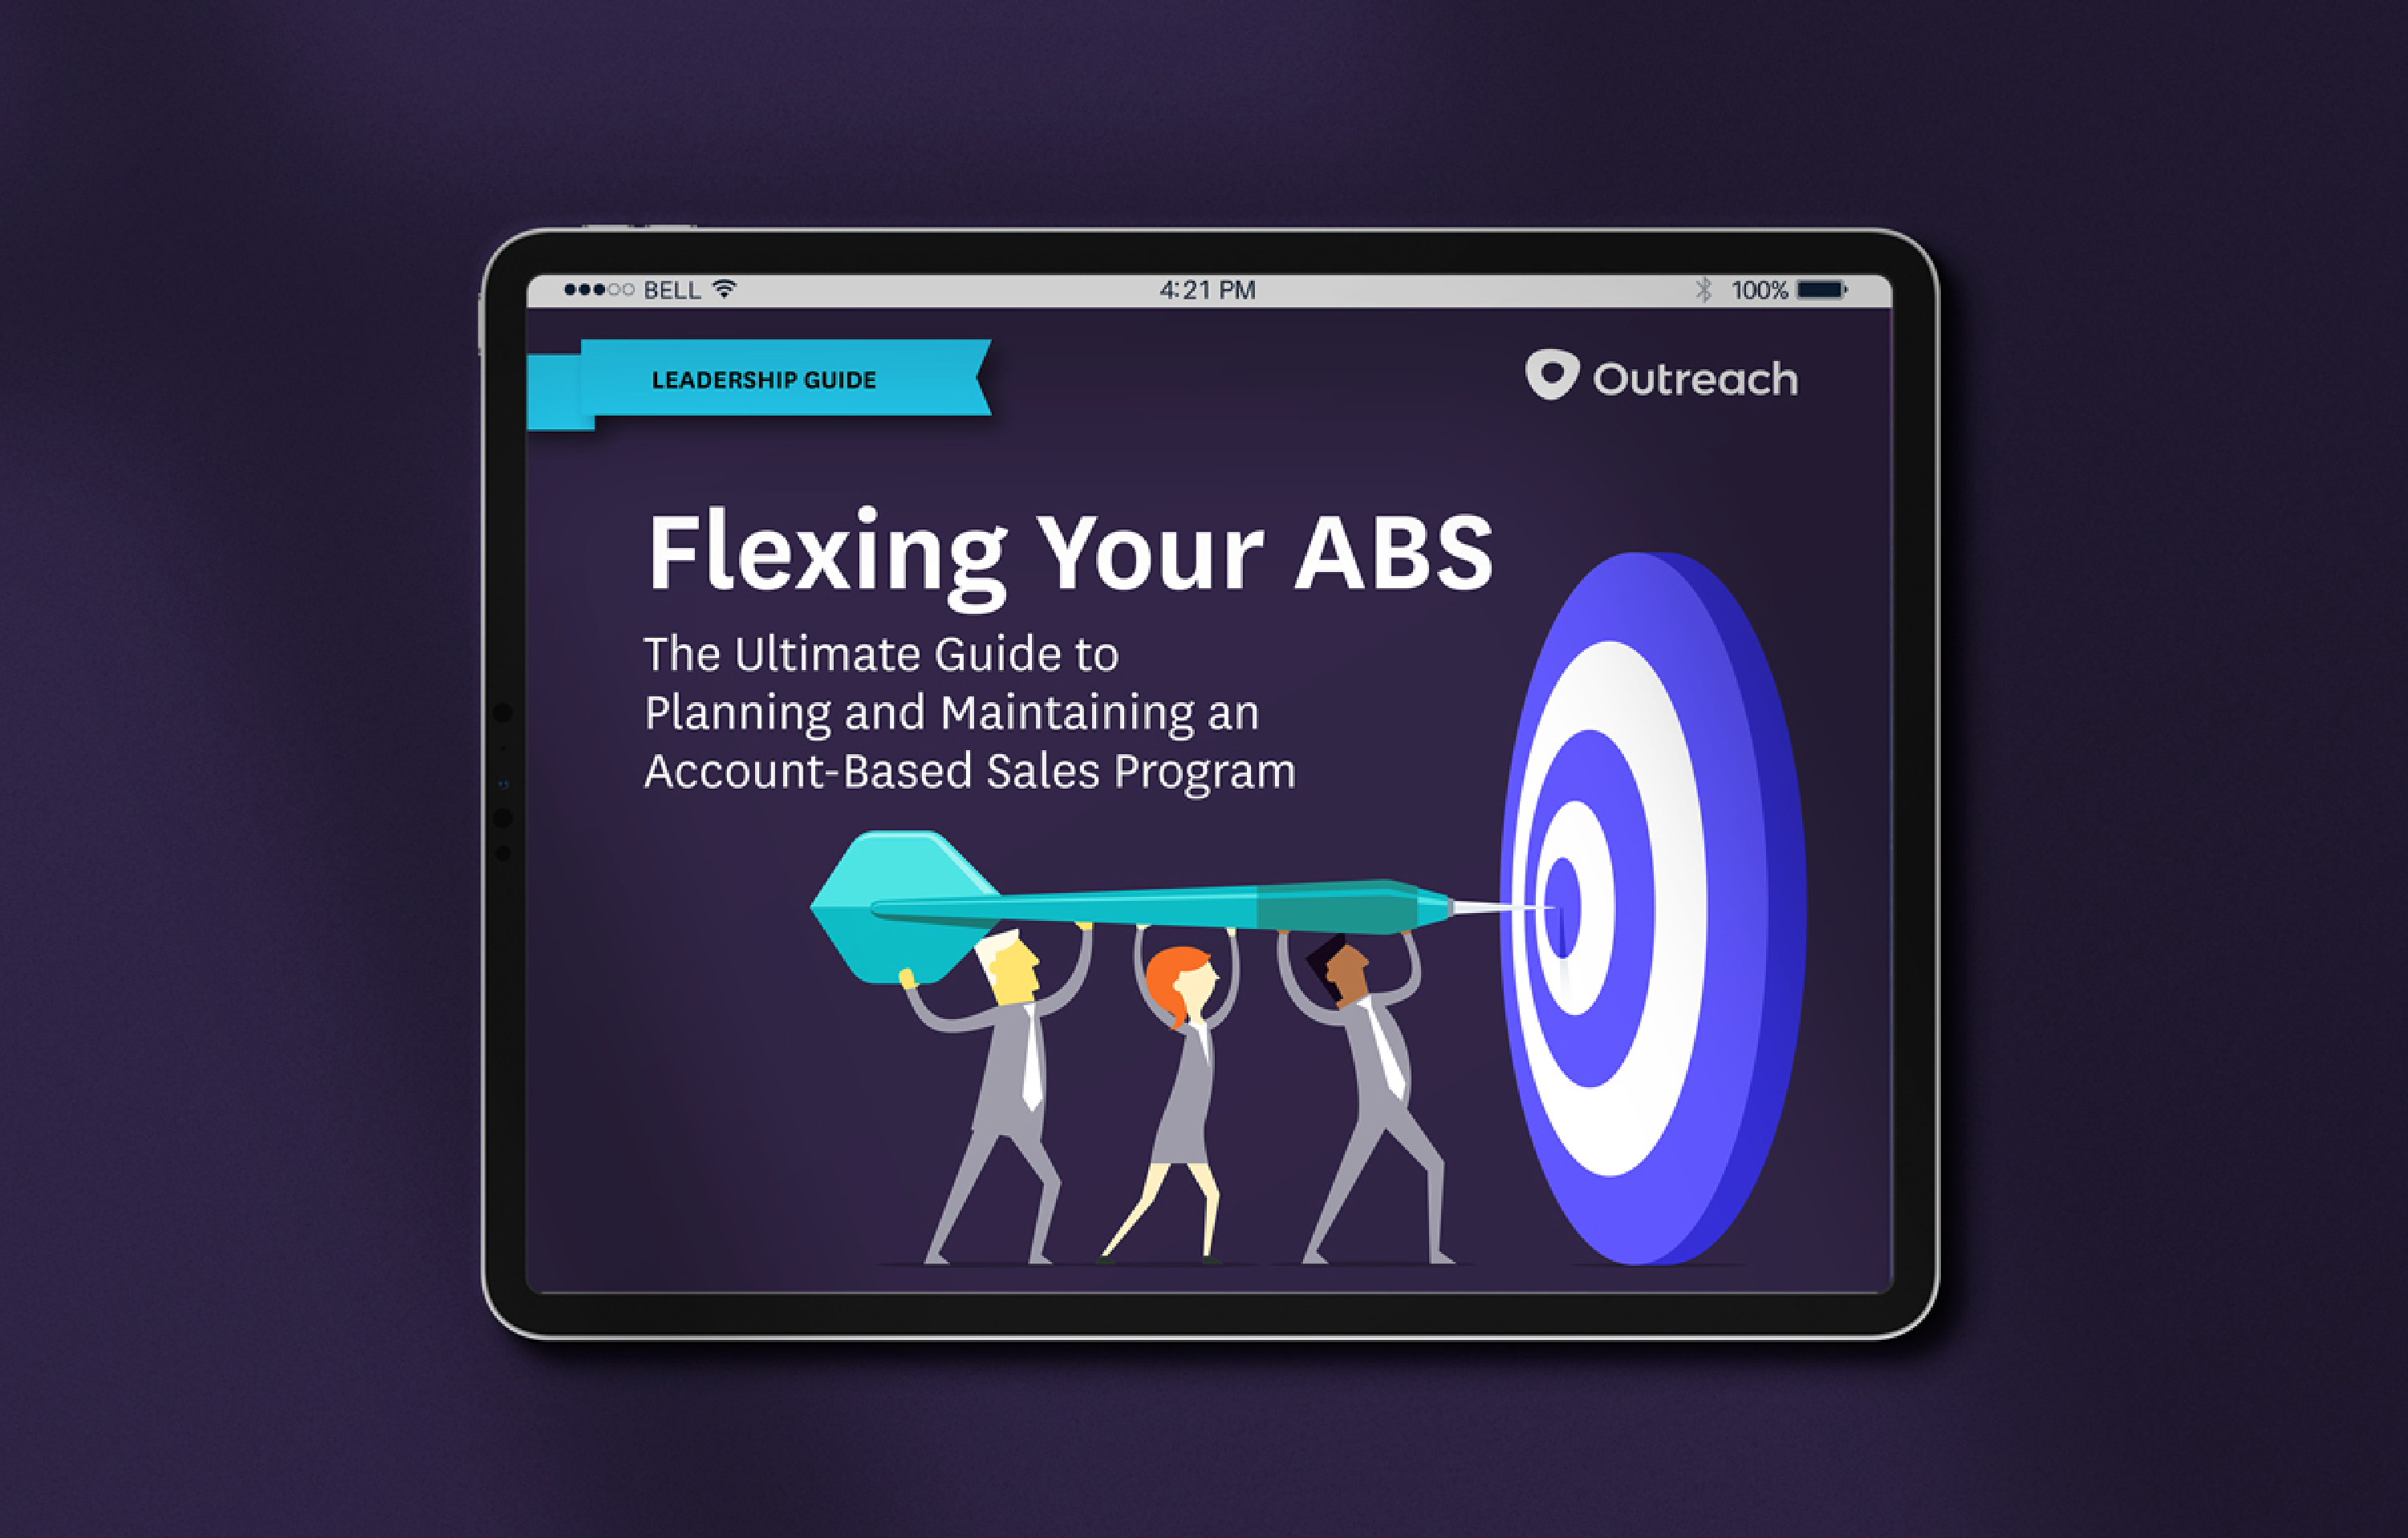 Flexing Your ABS: The Ultimate Guide to Account-Based Sales